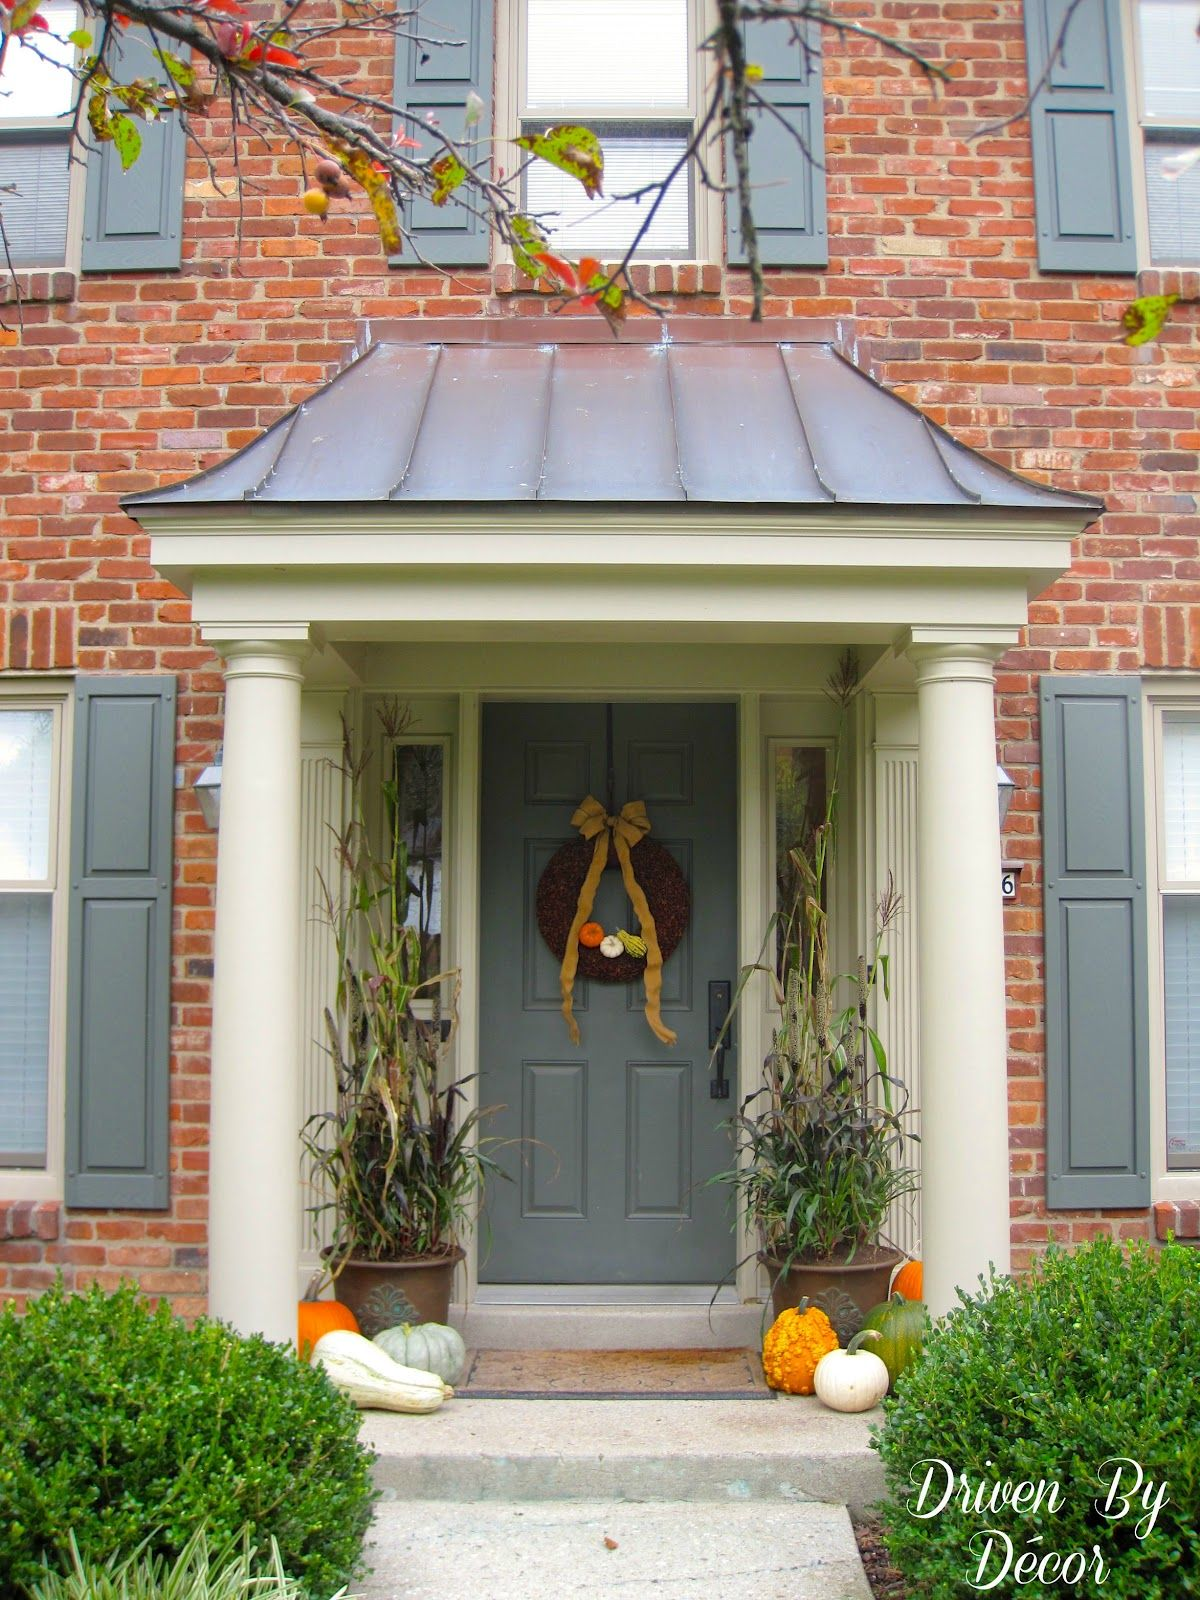 Outdoor fall decorating ideas front porch - Driven By D Cor Decorating My Front Porch For Fall I Love The Look Of